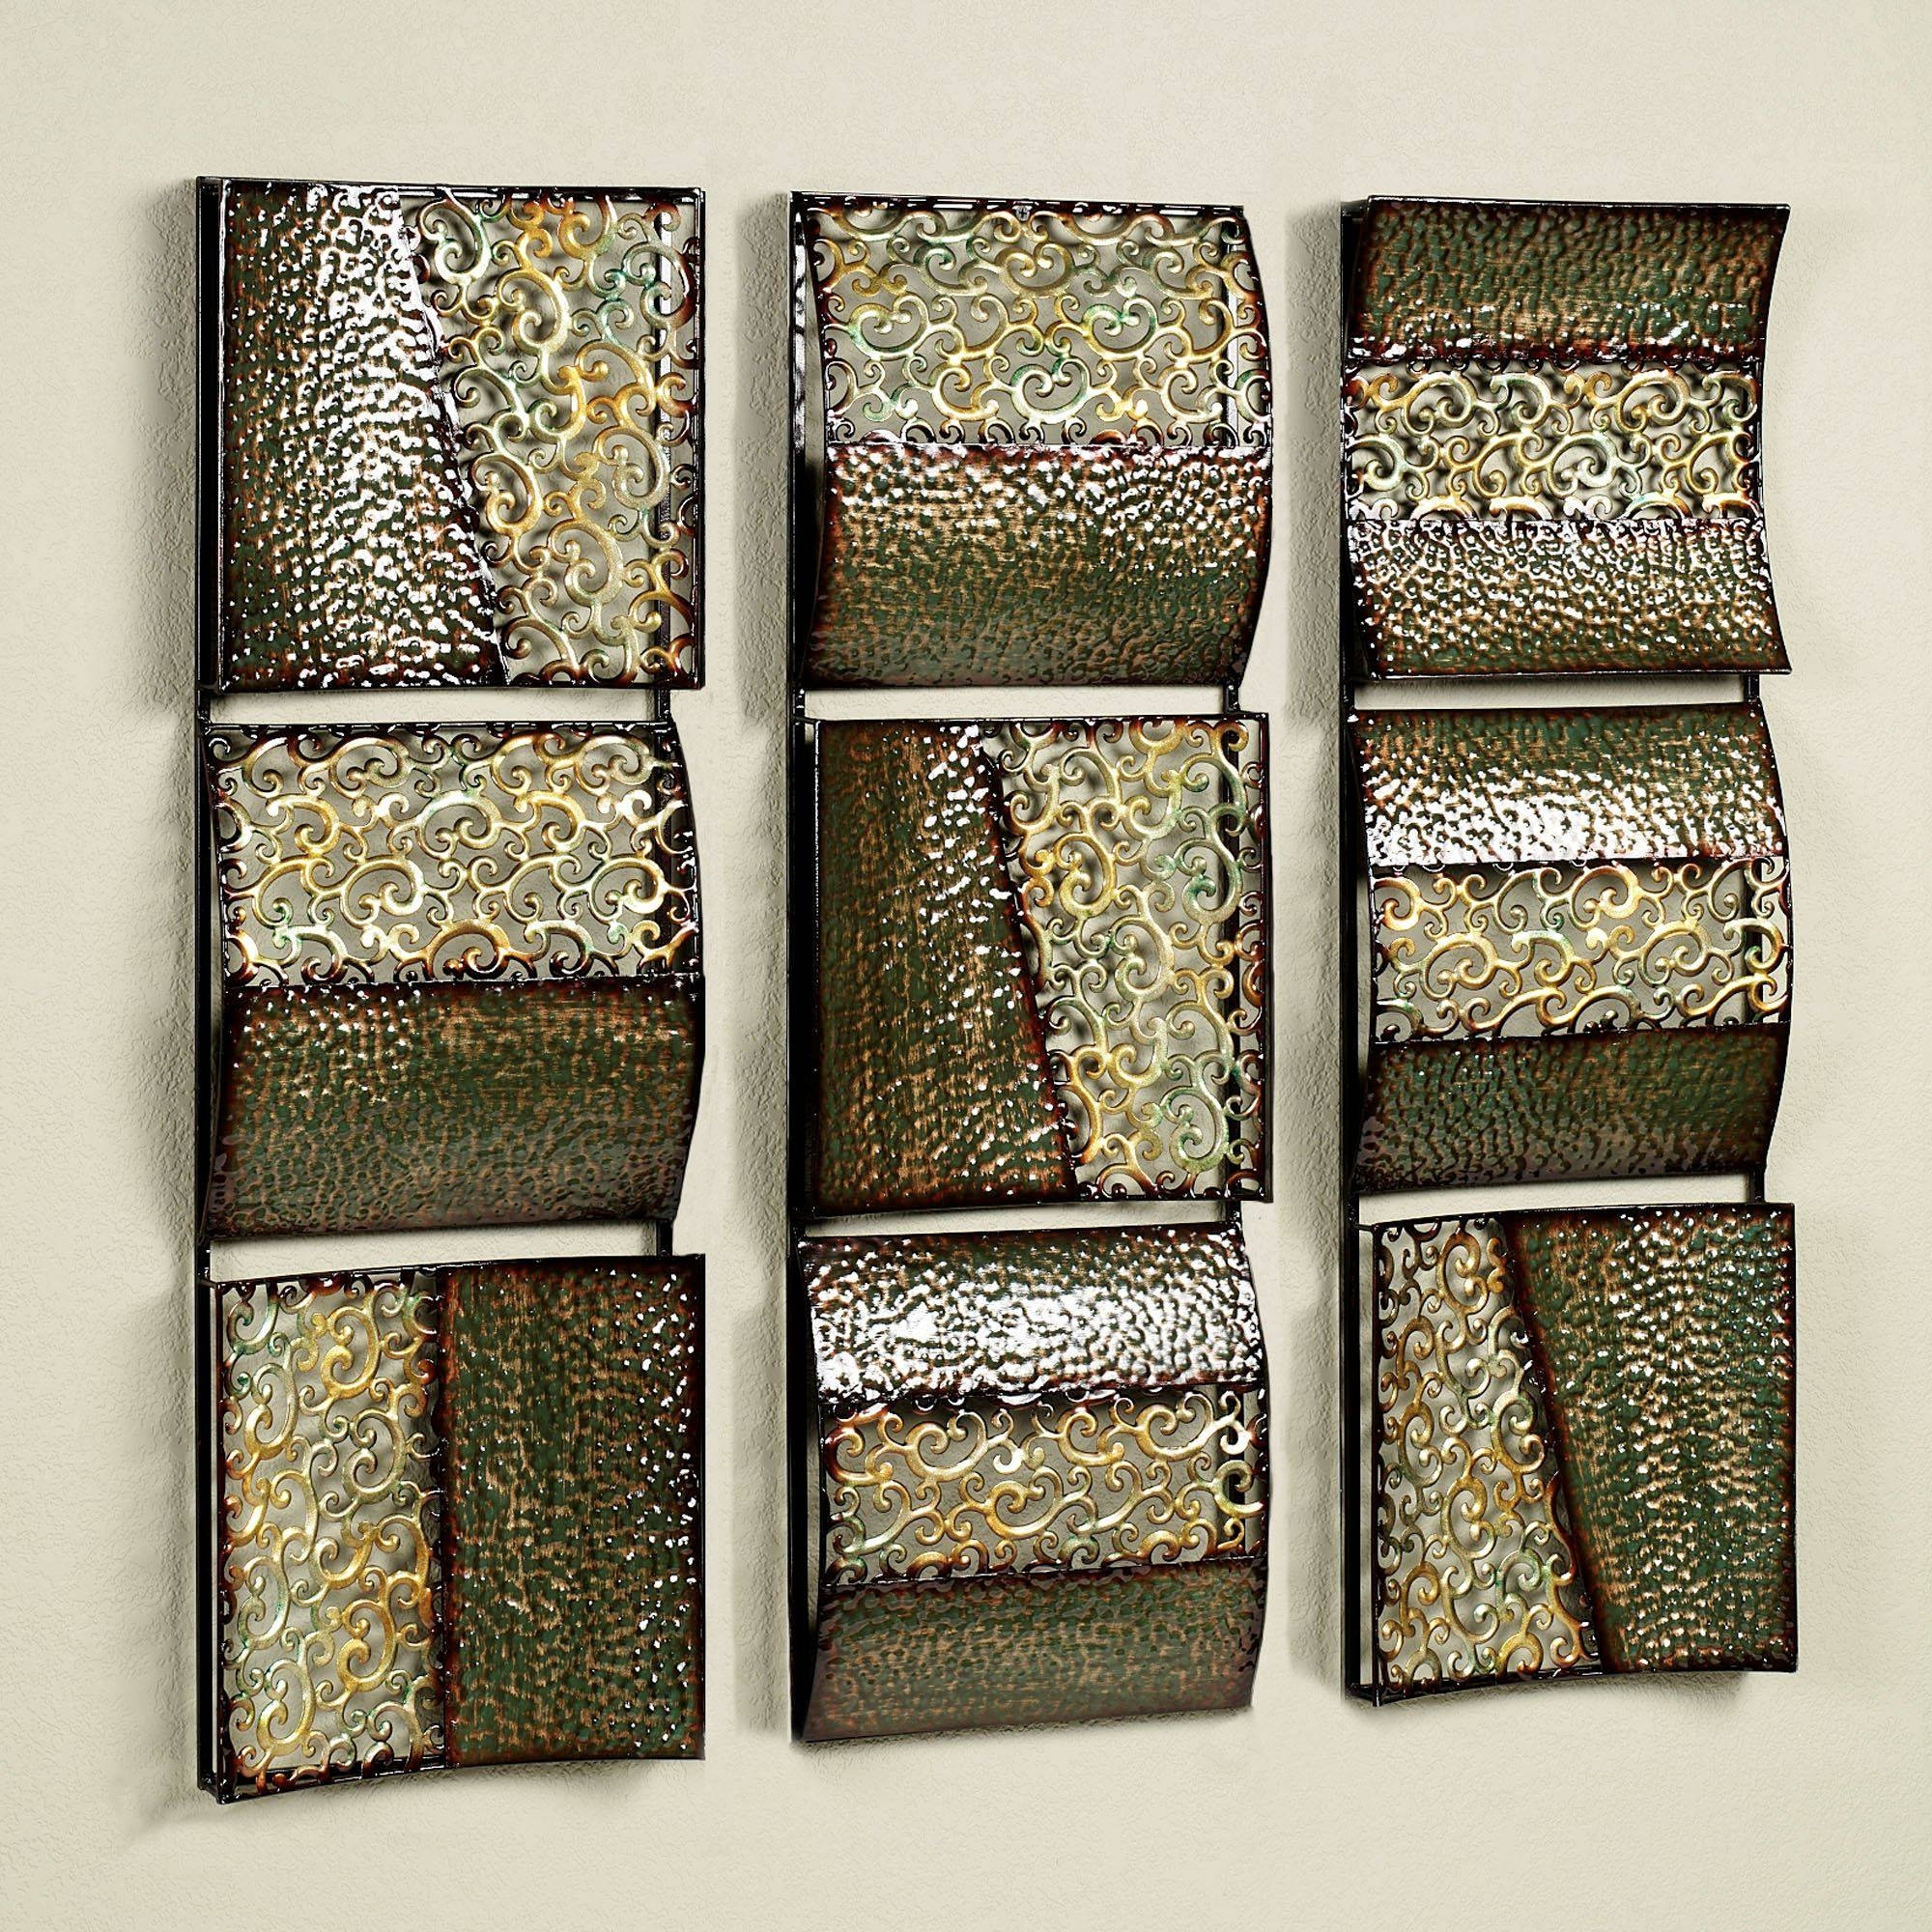 Wall Art Designs: Metal Wall Art Panels Summer Scents Wall Art Intended For Most Popular Decorative Metal Wall Art Panels (View 18 of 20)